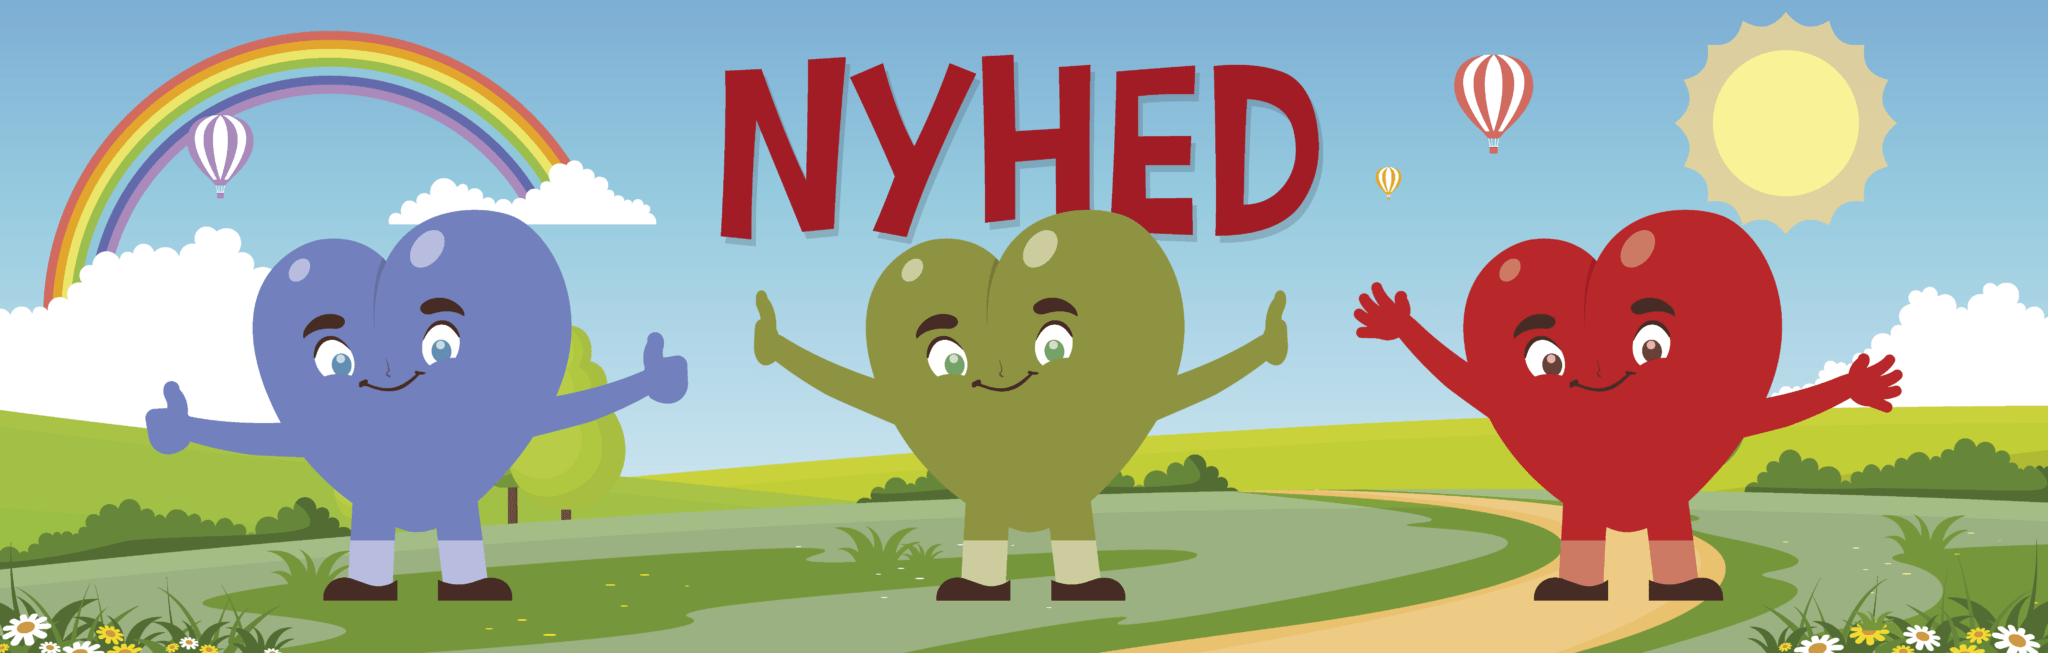 Nyhed-01